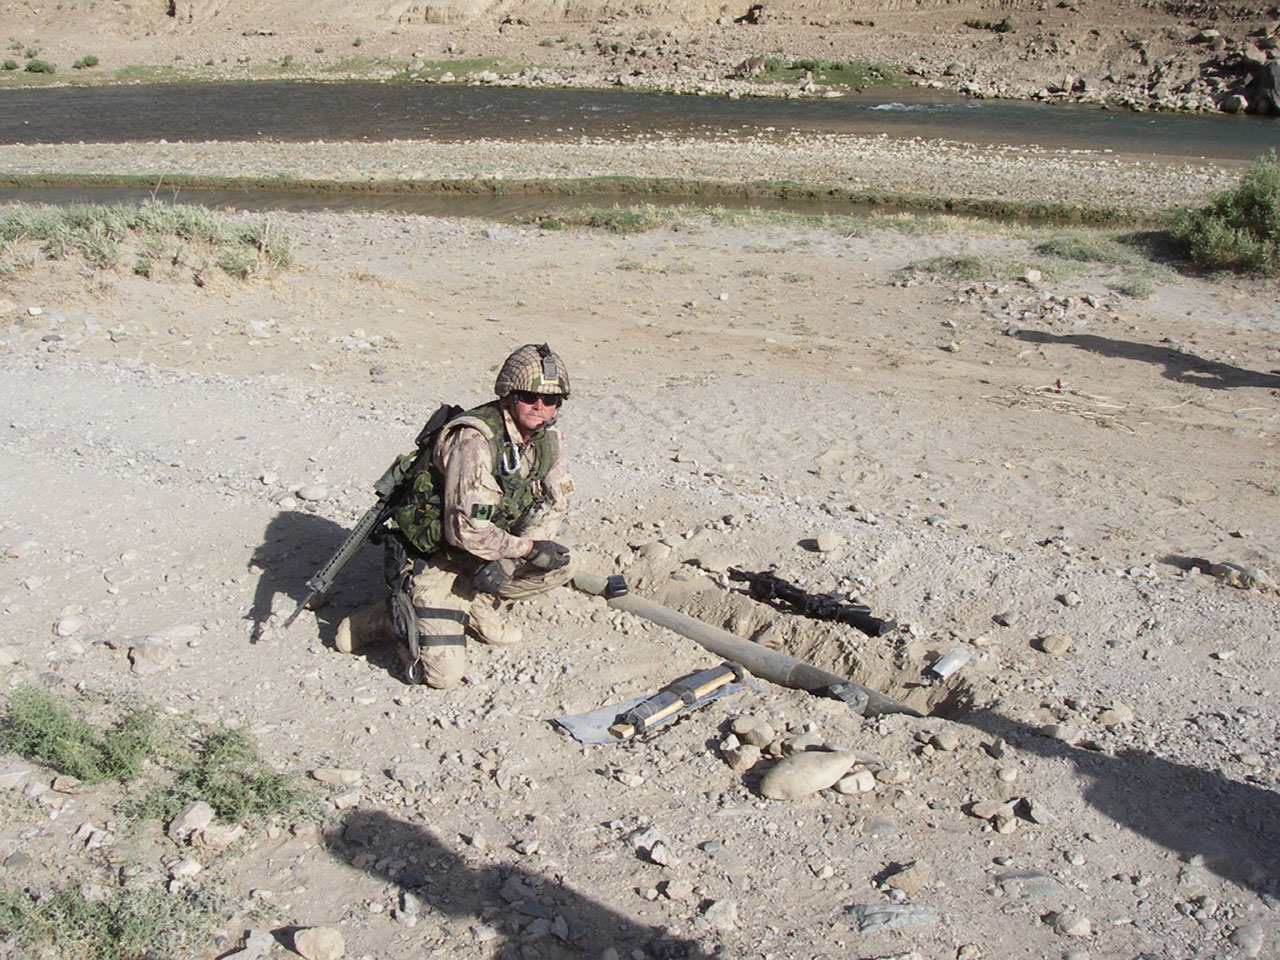 A navy diver displays an IED he has just dismantled and rendered safe.